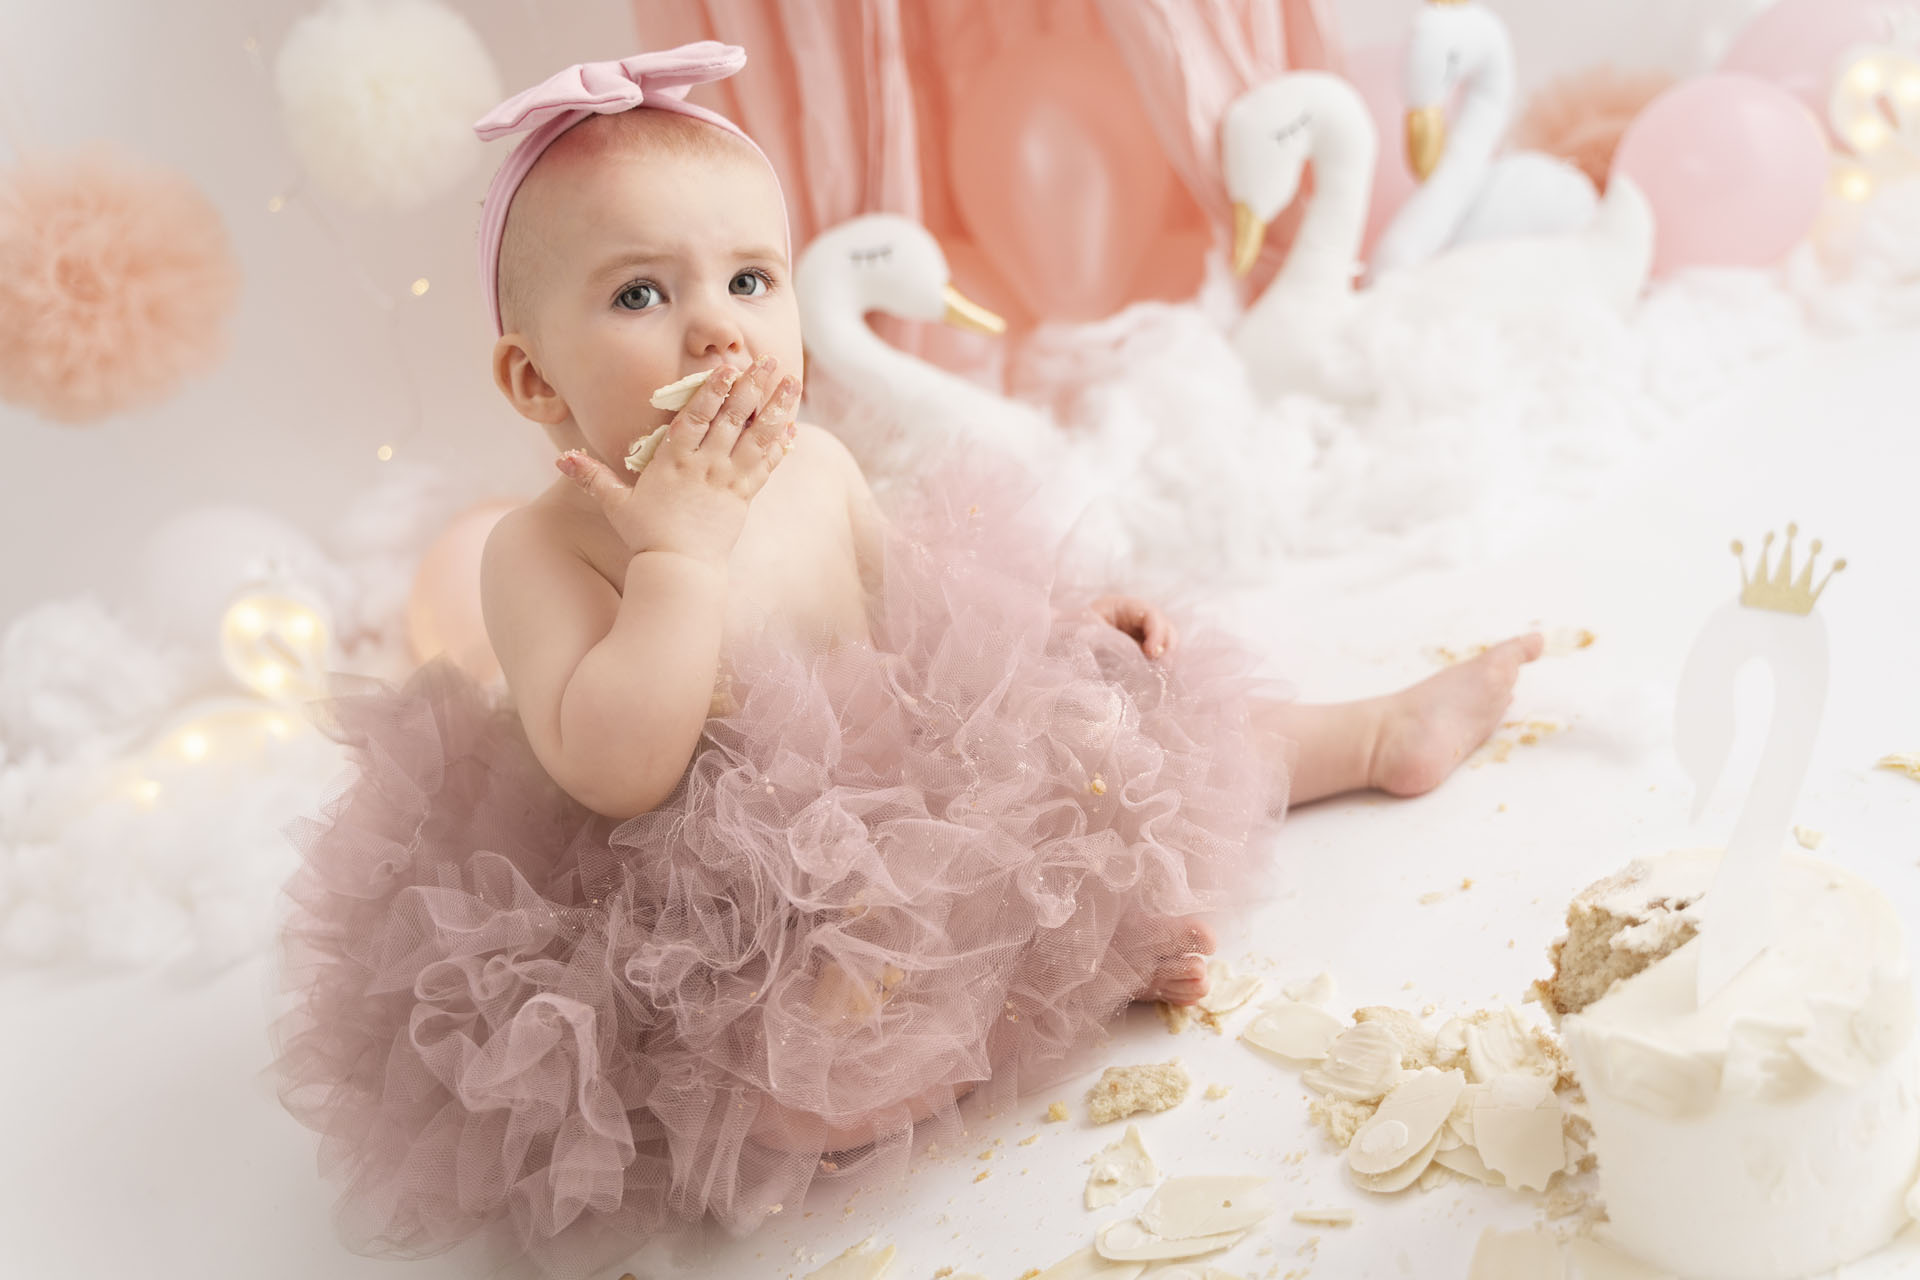 Cake Smash Photography by Canvas & Peach